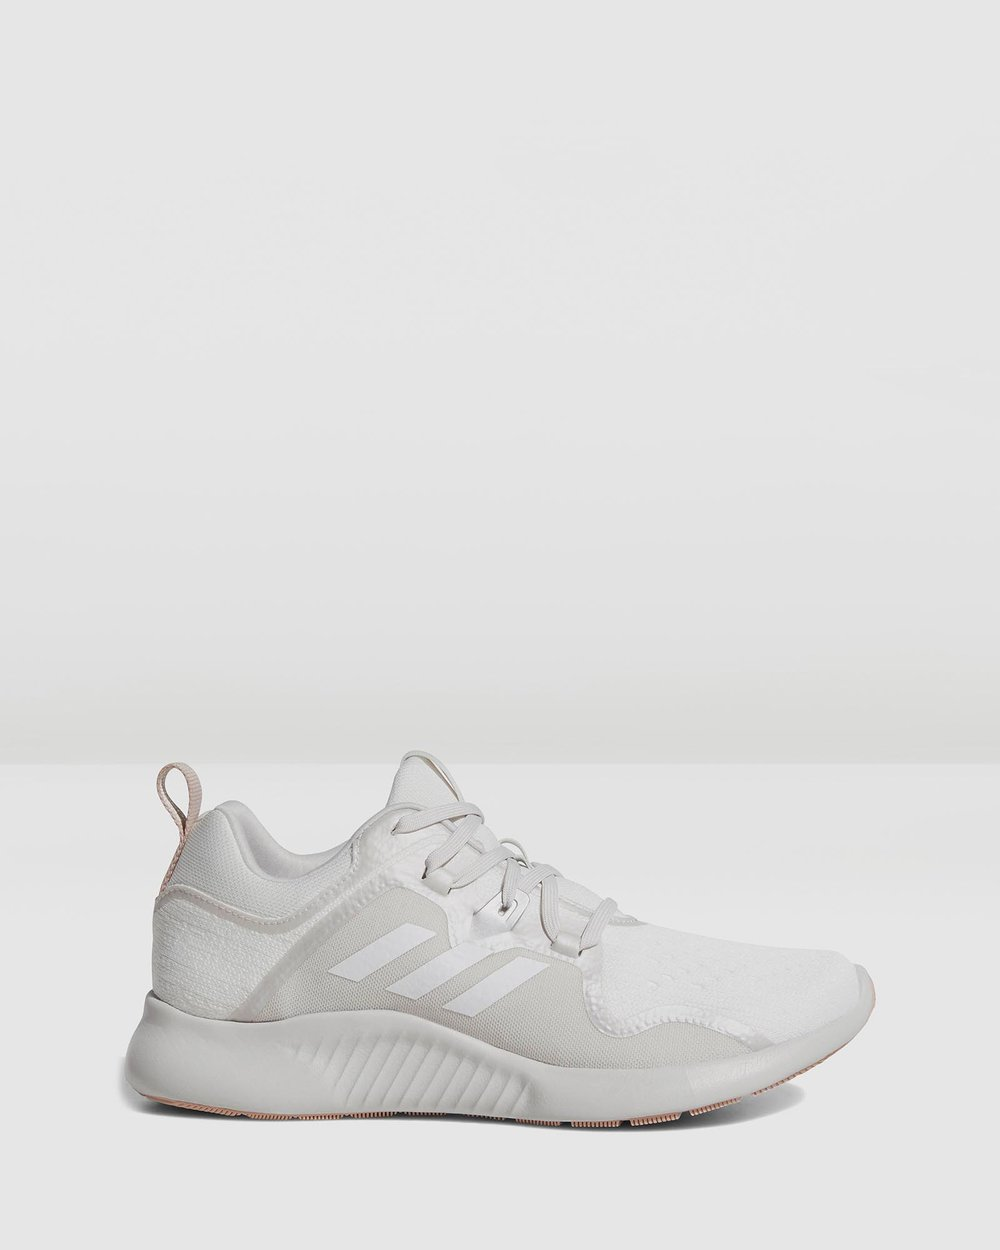 603643be8 Edgebounce Shoes by adidas Performance Online